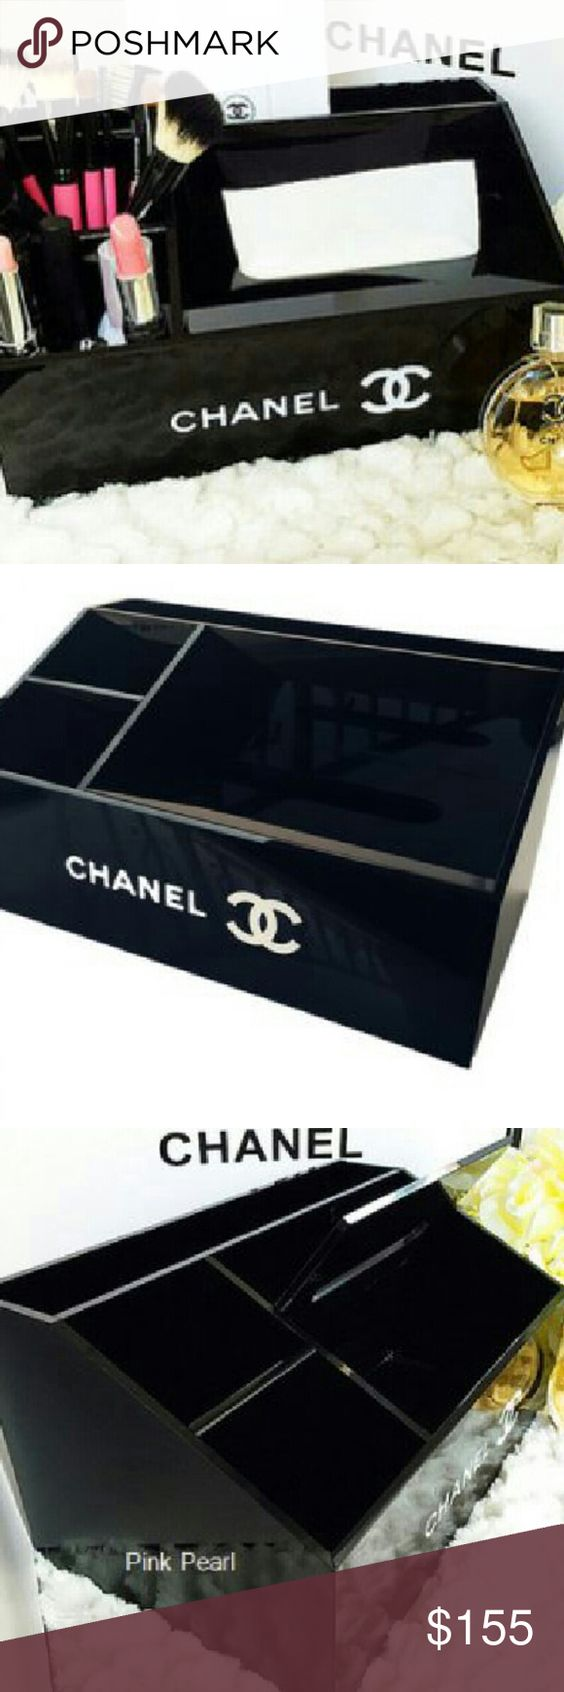 Chanel Multi Function Box Chanel multi-function box. New rare limited edition. Glossy black acrylic. 28cm x 18cm x 14cm.  VIP Gift item given to members from Chanel flagship stores. Not sold in stores. Items are not included (perfume, make-up etc.) Brand new in box. CHANEL Makeup Brushes & Tools